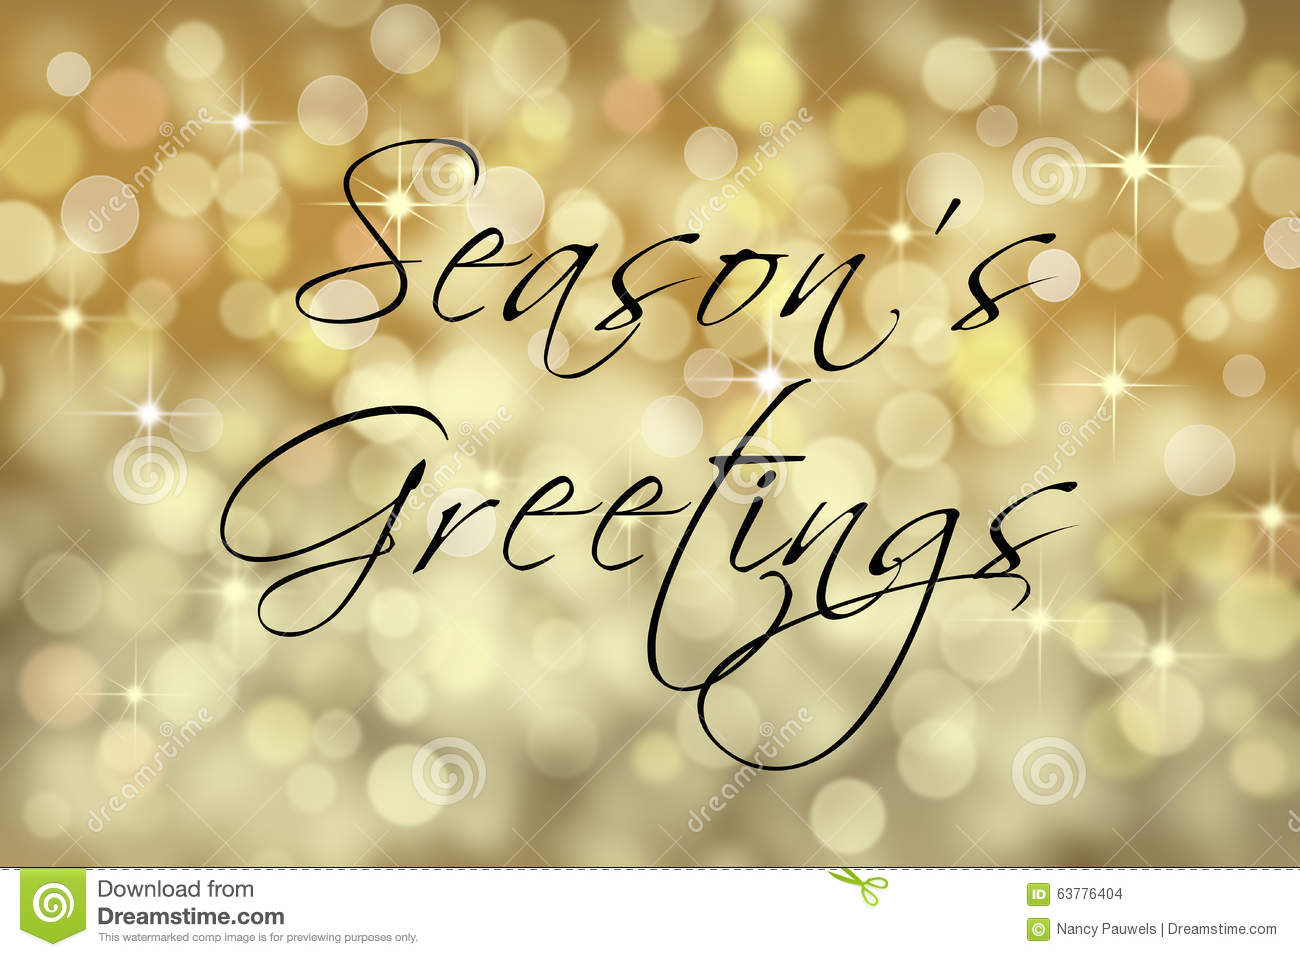 Seasons greetings text card with bokeh background stock photo royalty free stock photo m4hsunfo Choice Image